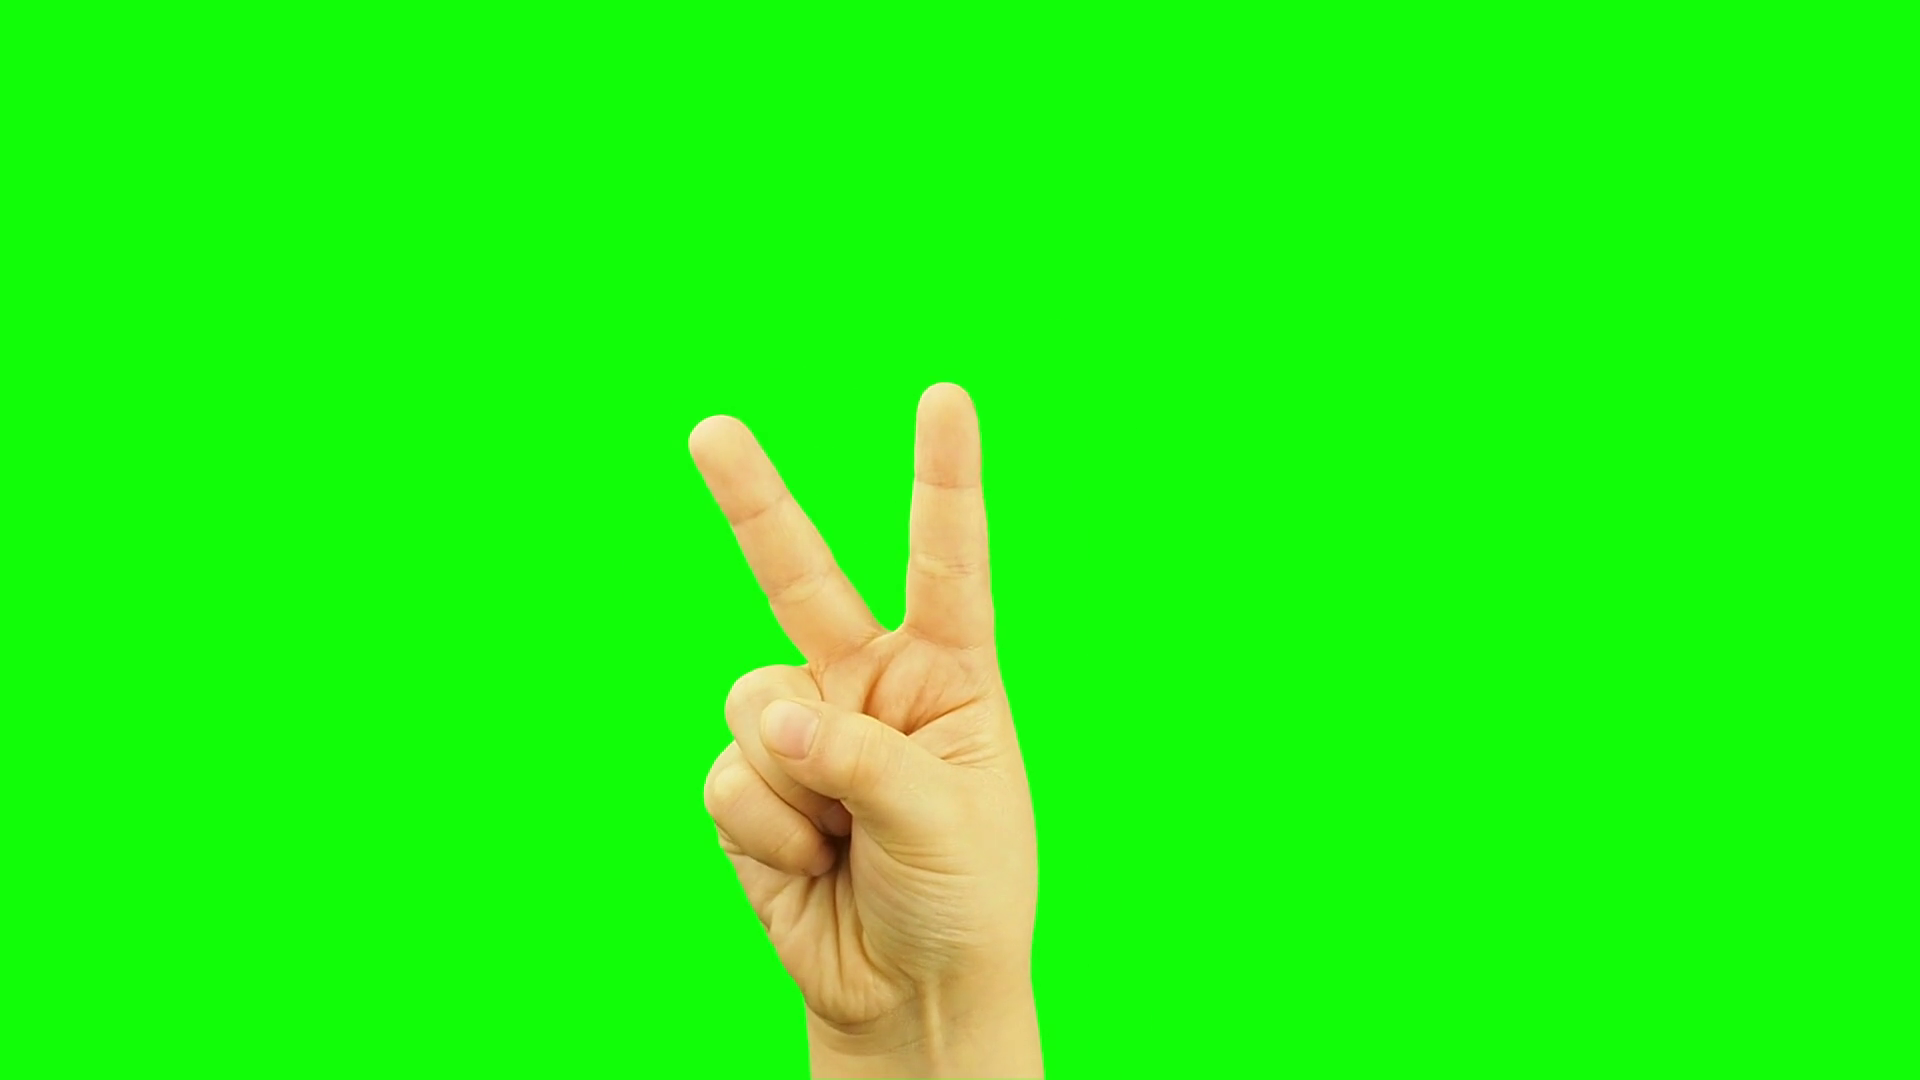 Victory sign hand photo